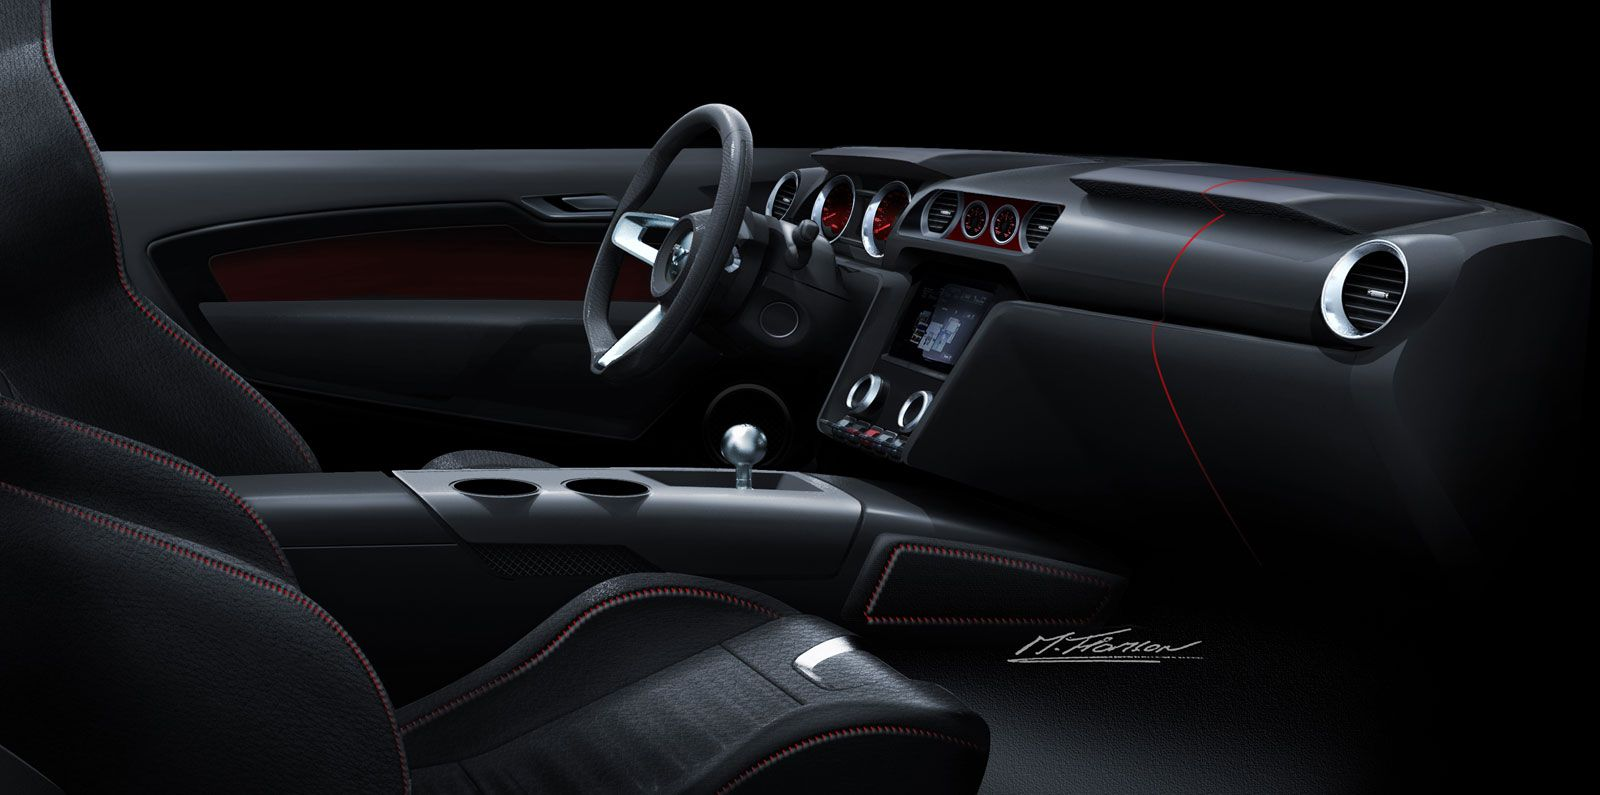 2015 Ford Mustang Interior Design Rendering Theme A Car Stuff Sketches